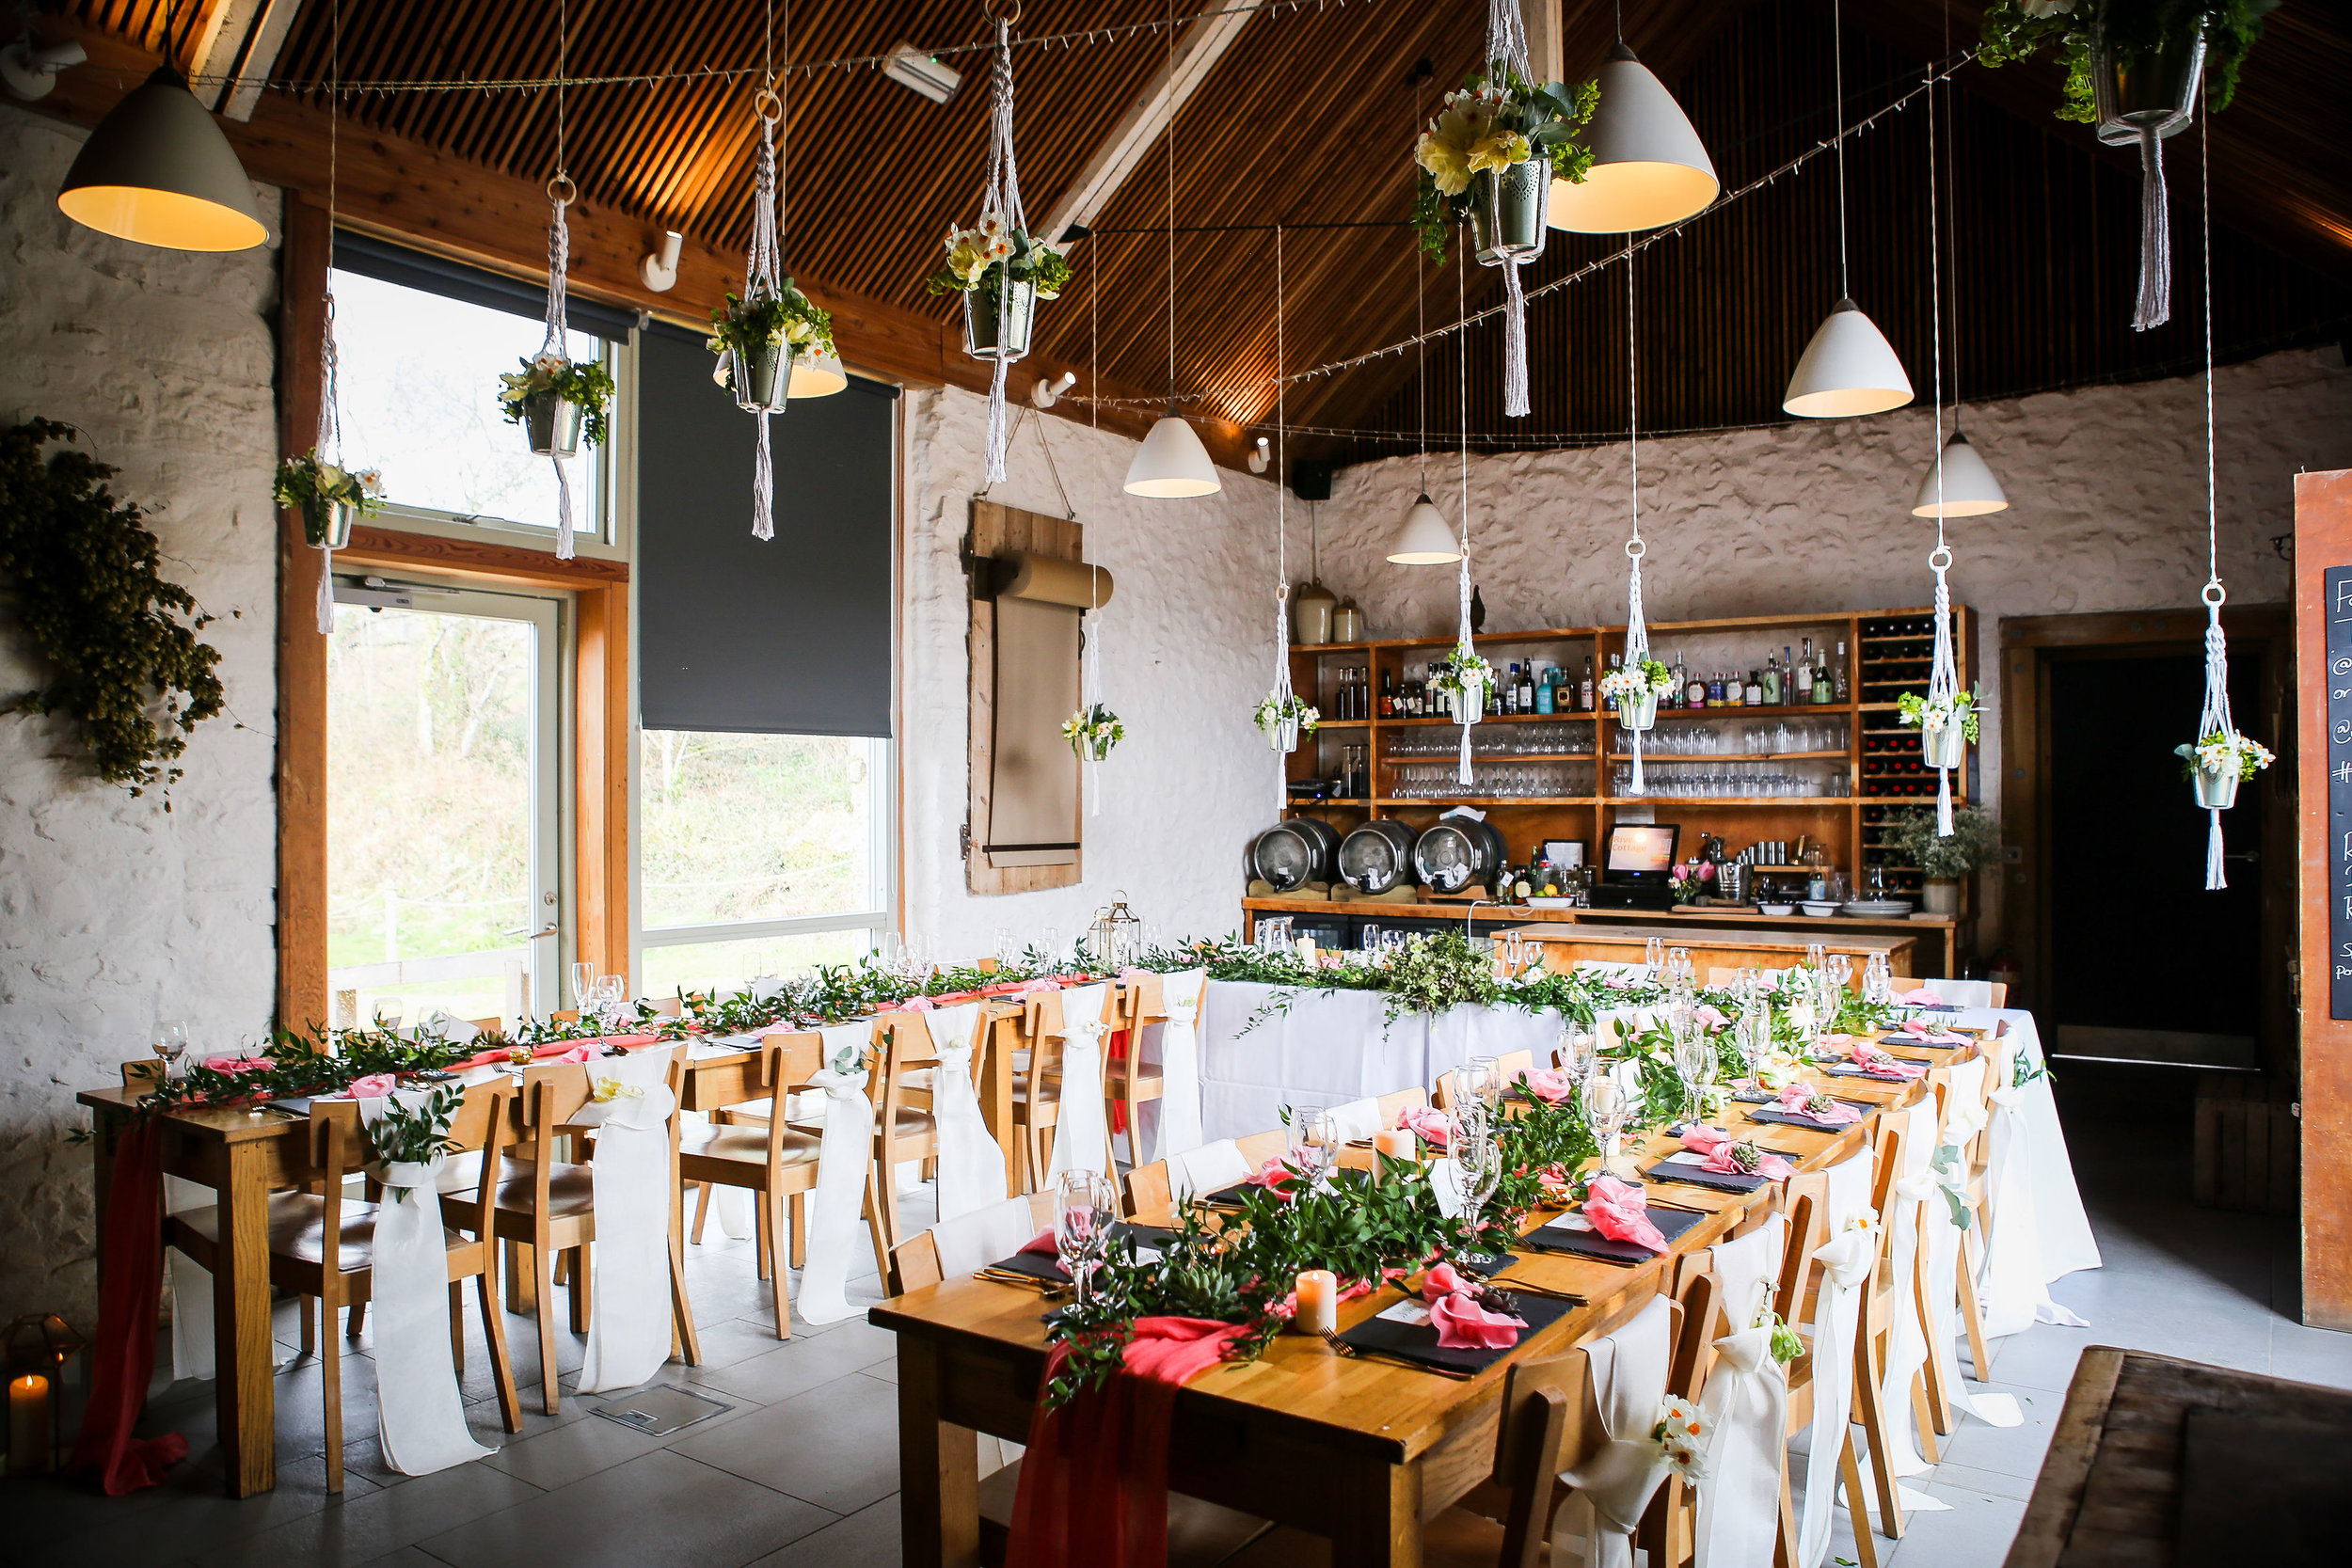 River Cottage - A wedding at River Cottage will inspire and enchant, a day that you and your guests will never forget. Every happy couple is given the freedom to design their perfect day. Say